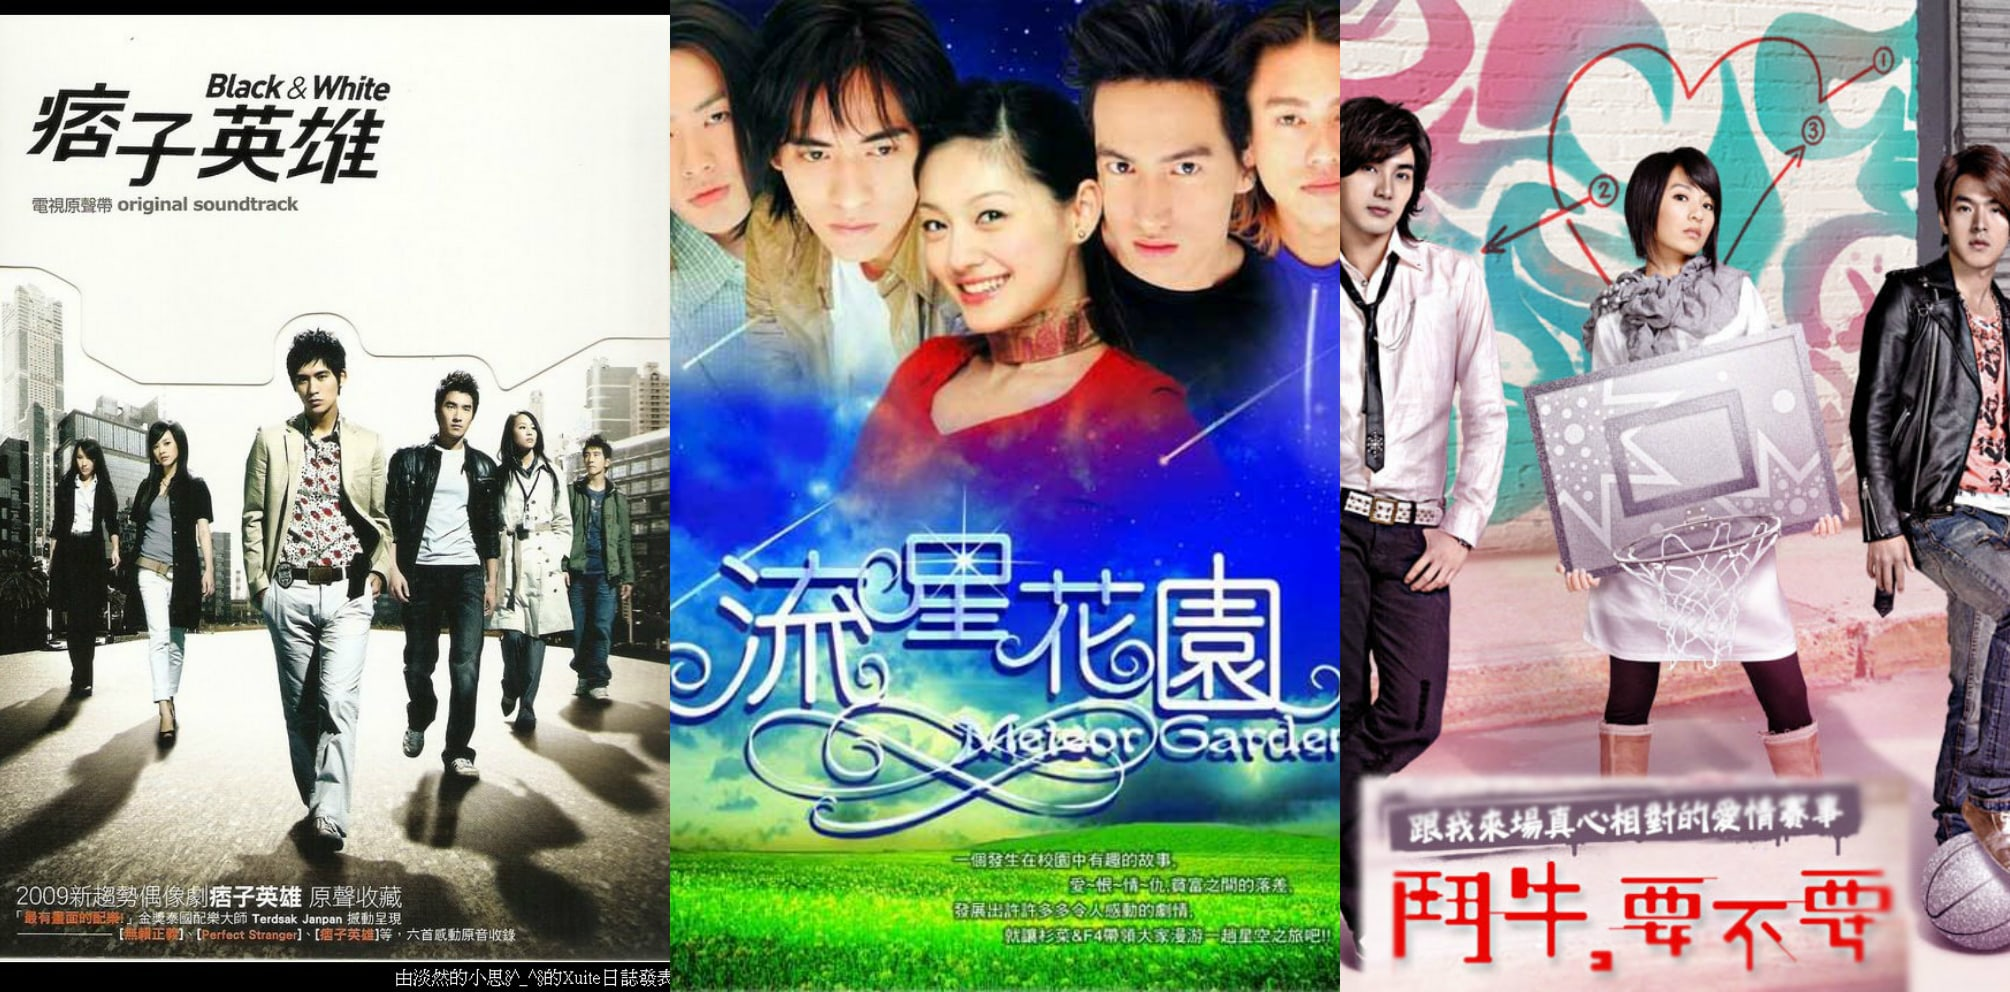 Feeling Nostalgic? Here Are 9 Must-Watch Taiwanese Dramas From The 2000s